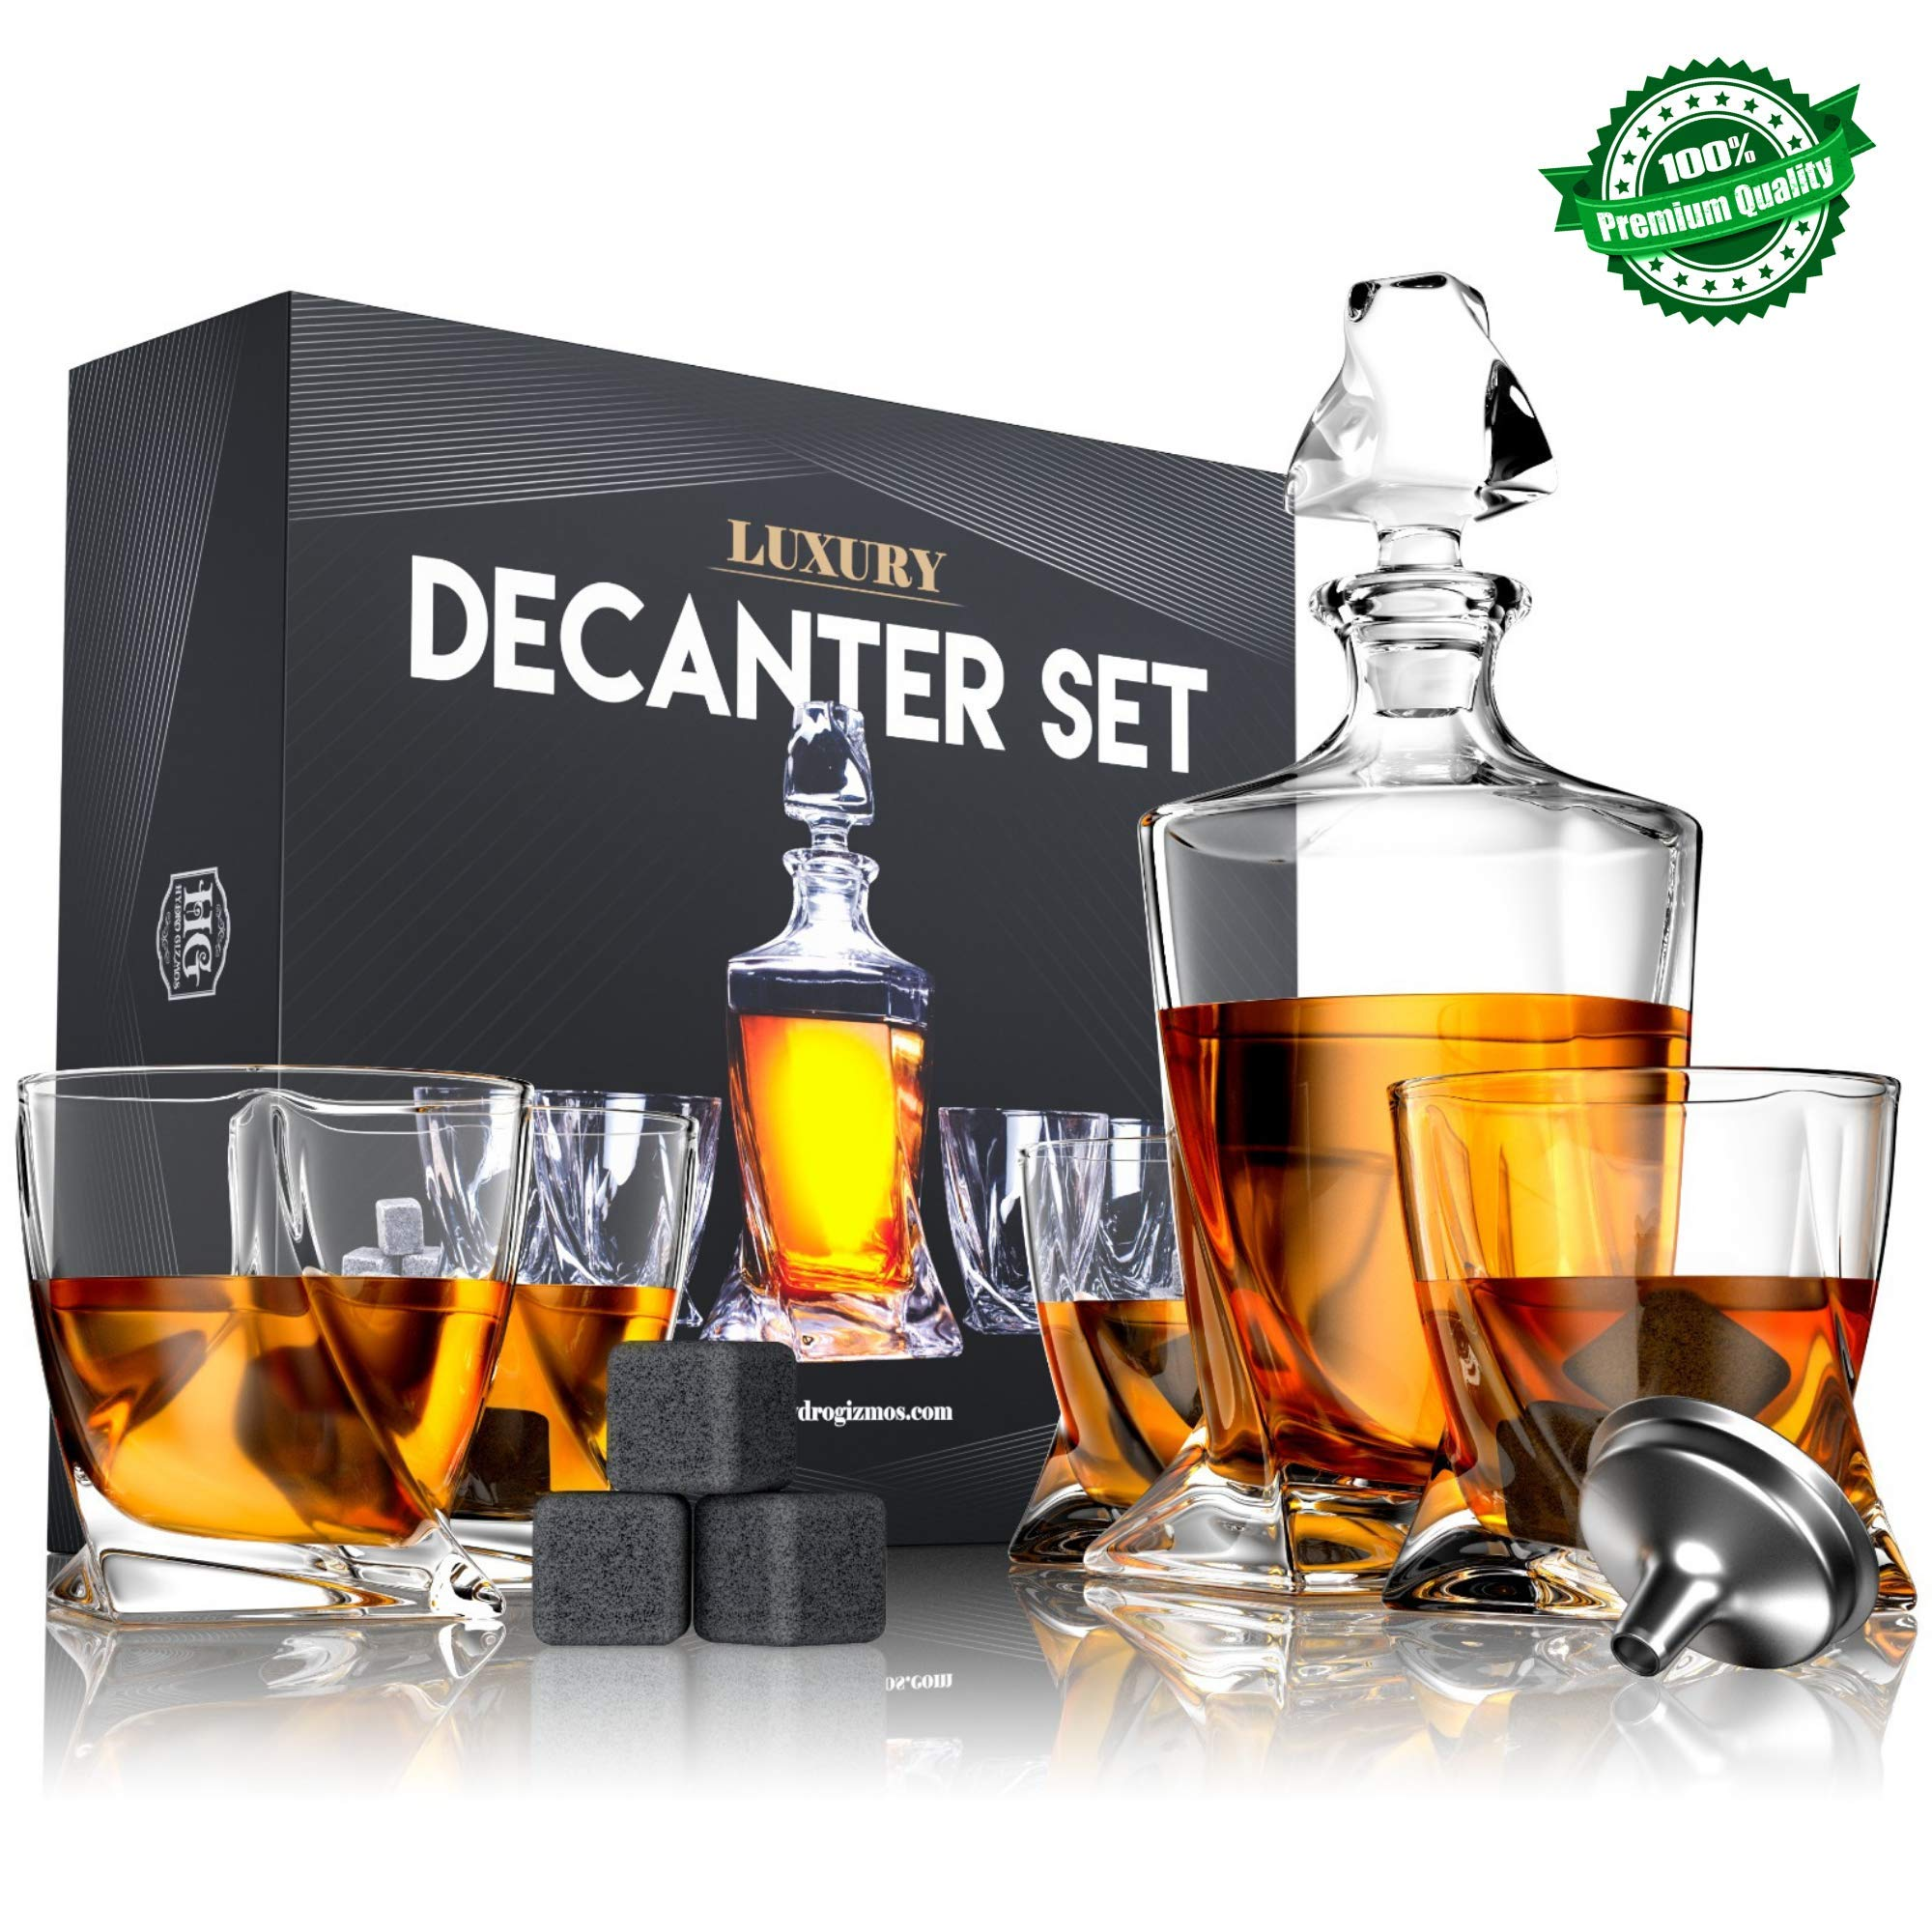 Premium Twist Glass Decanter Set with 4 Liquor Glasses, Rum, Scotch, Bourbon, Whiskey Decanter Set Mens Gift with 9 Cooling Whisky Stones and Funnel, Crystal Clear Liquor Decanter Drinking Set by Hydro Gizmos